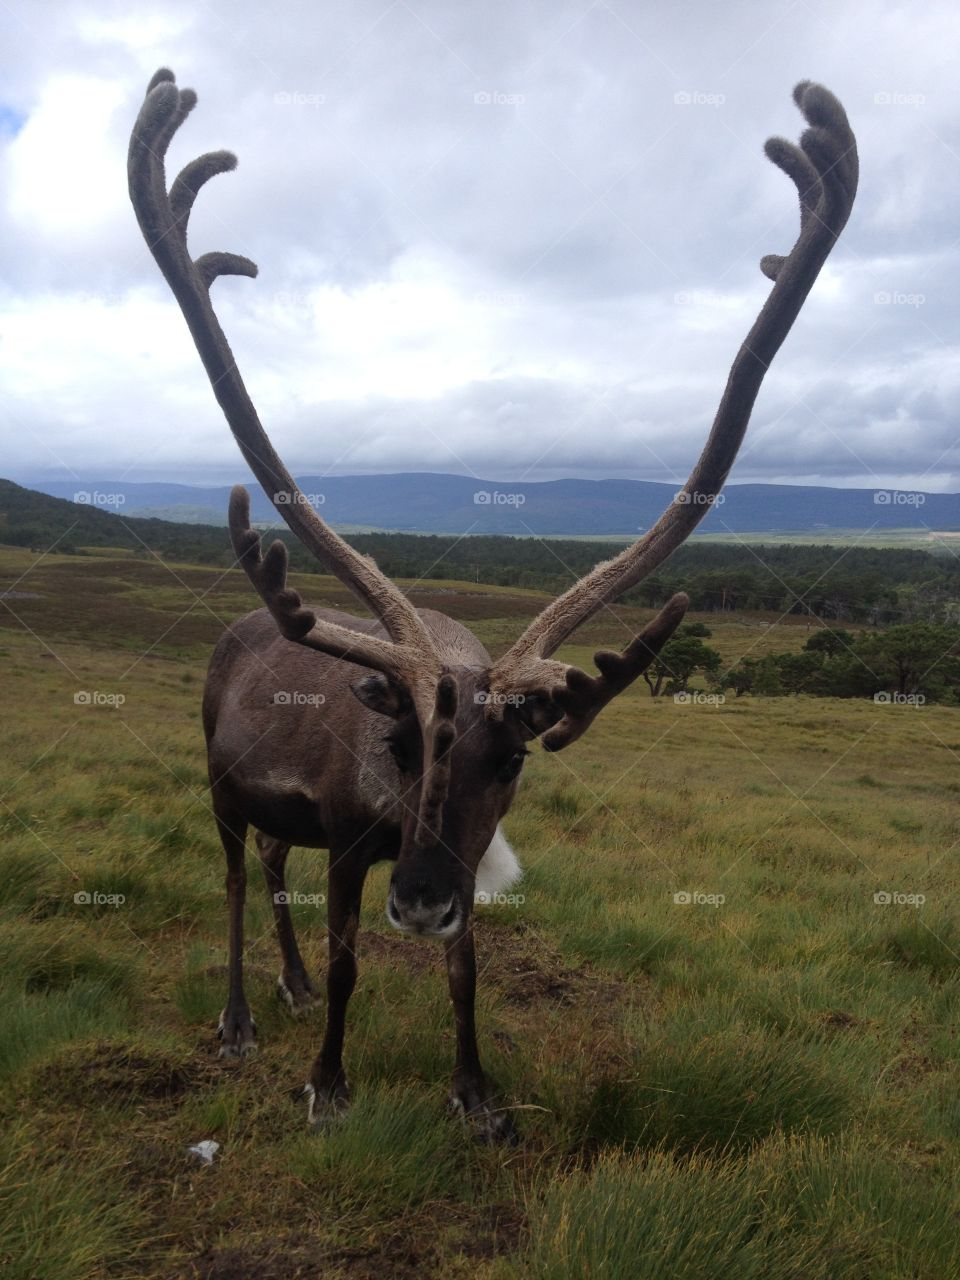 Reindeer standing on grassy field at hill